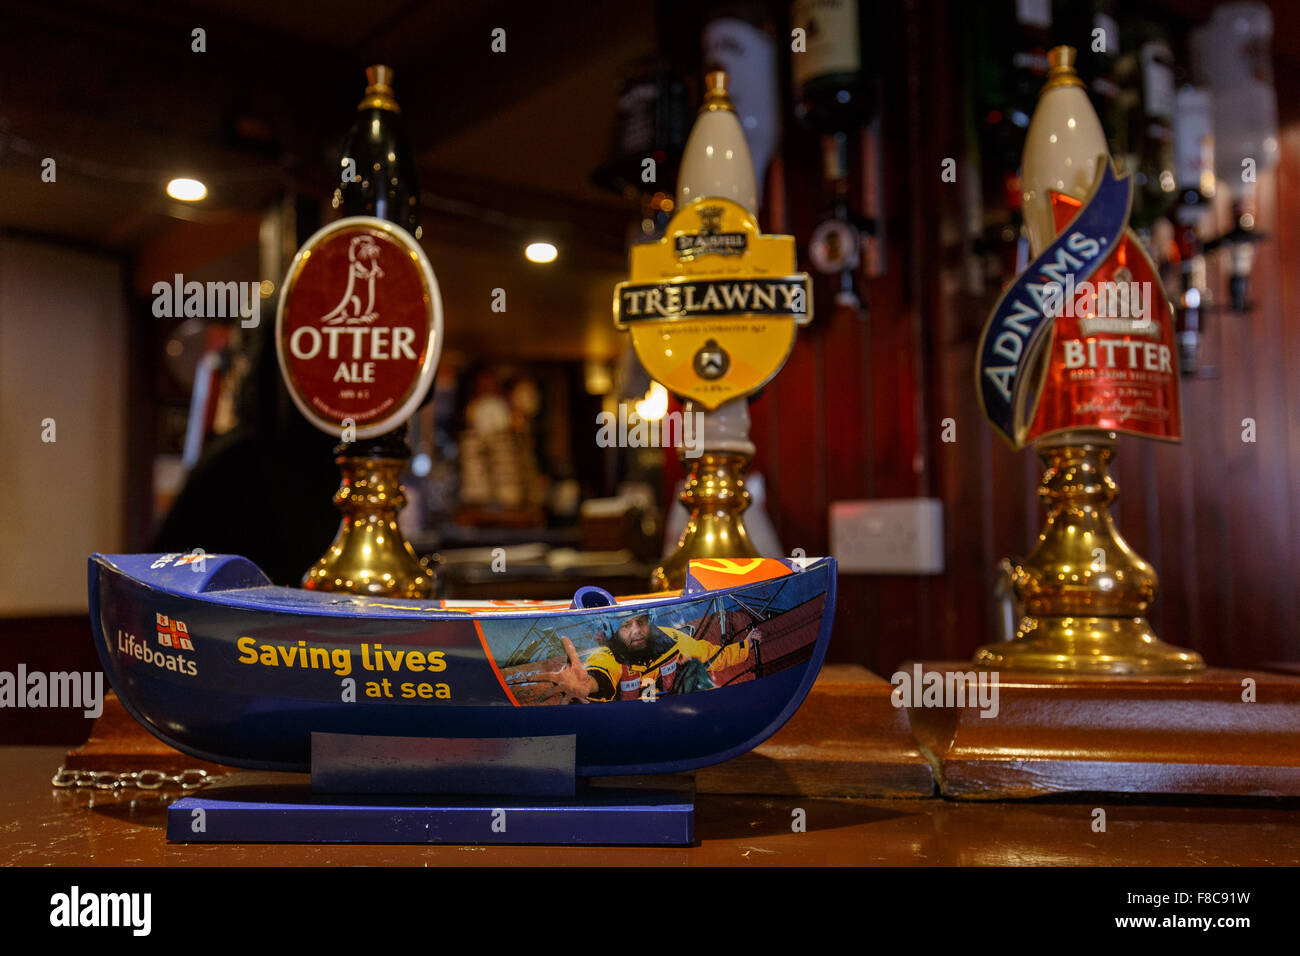 Saving Lives at Sea, the ubiquitous RNLI charity lifeboat moneybox found in seaside pubs. - Stock Image